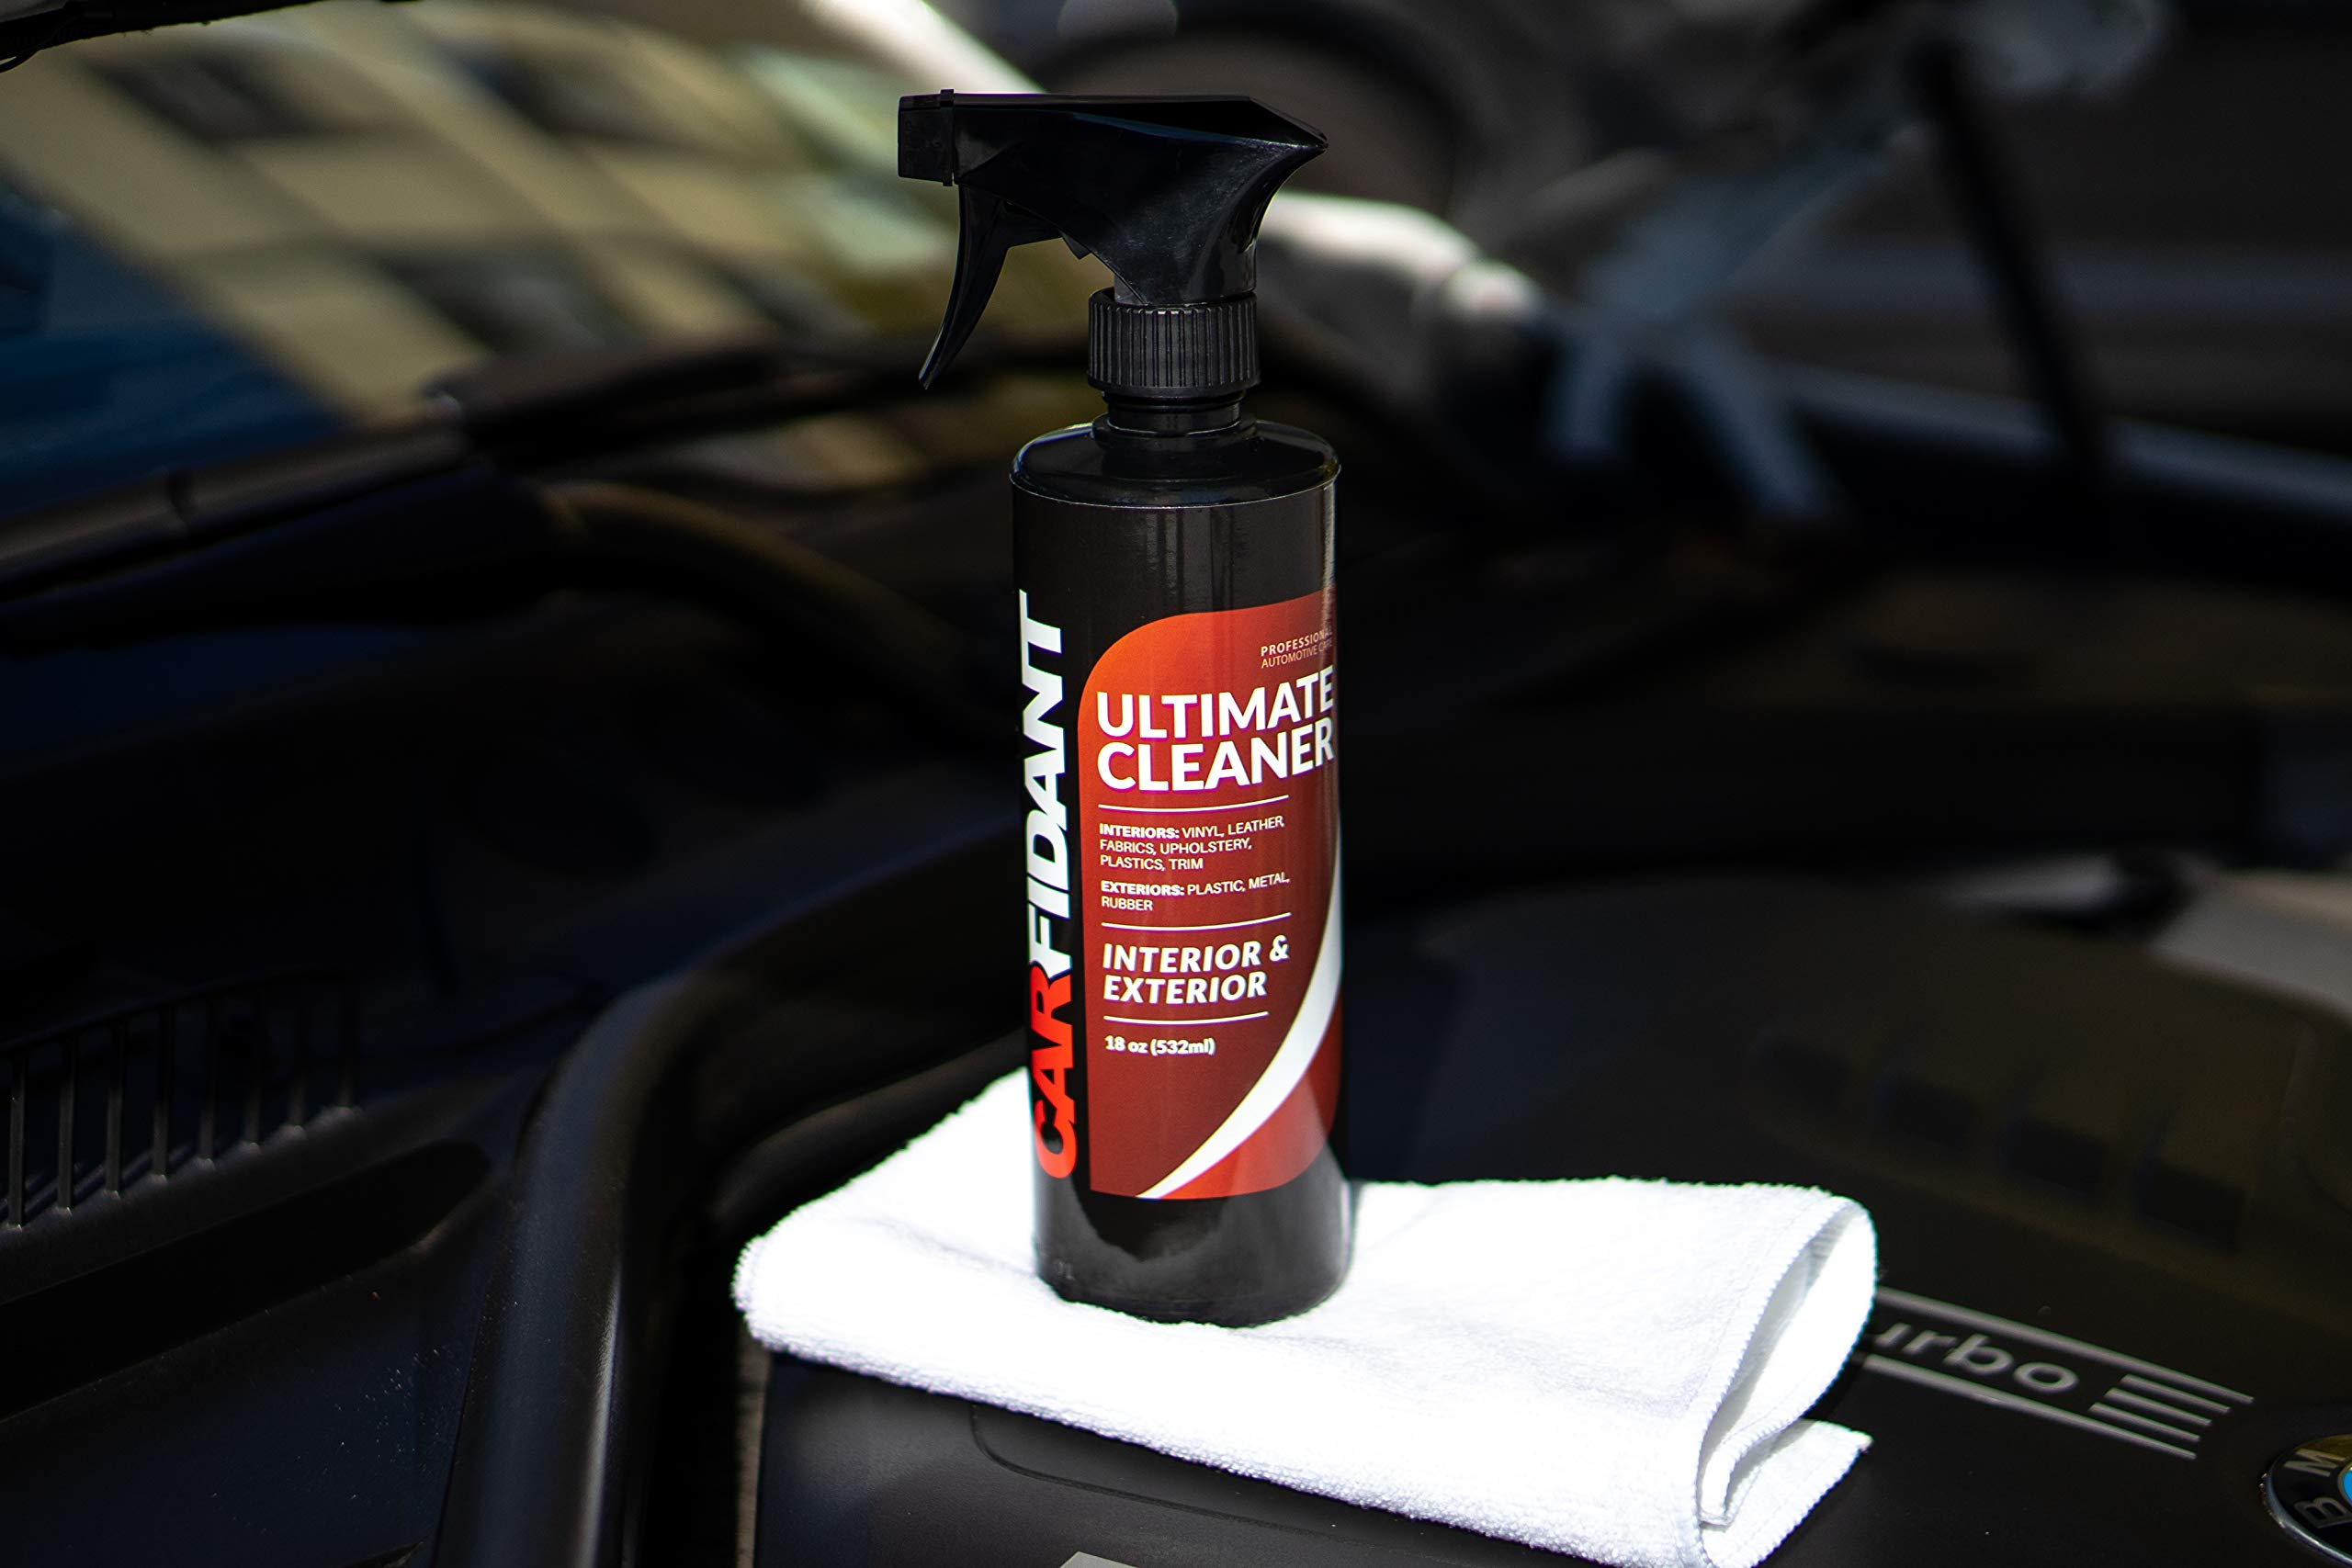 Carfidant Ultimate Car Interior Cleaner - Automotive Interior & Exterior Cleaner All Purpose Cleaner for Car Carpet Upholstery Leather Vinyl Cloth Plastic Seats Trim Engine Mats - Car Cleaning Kit by Carfidant (Image #8)